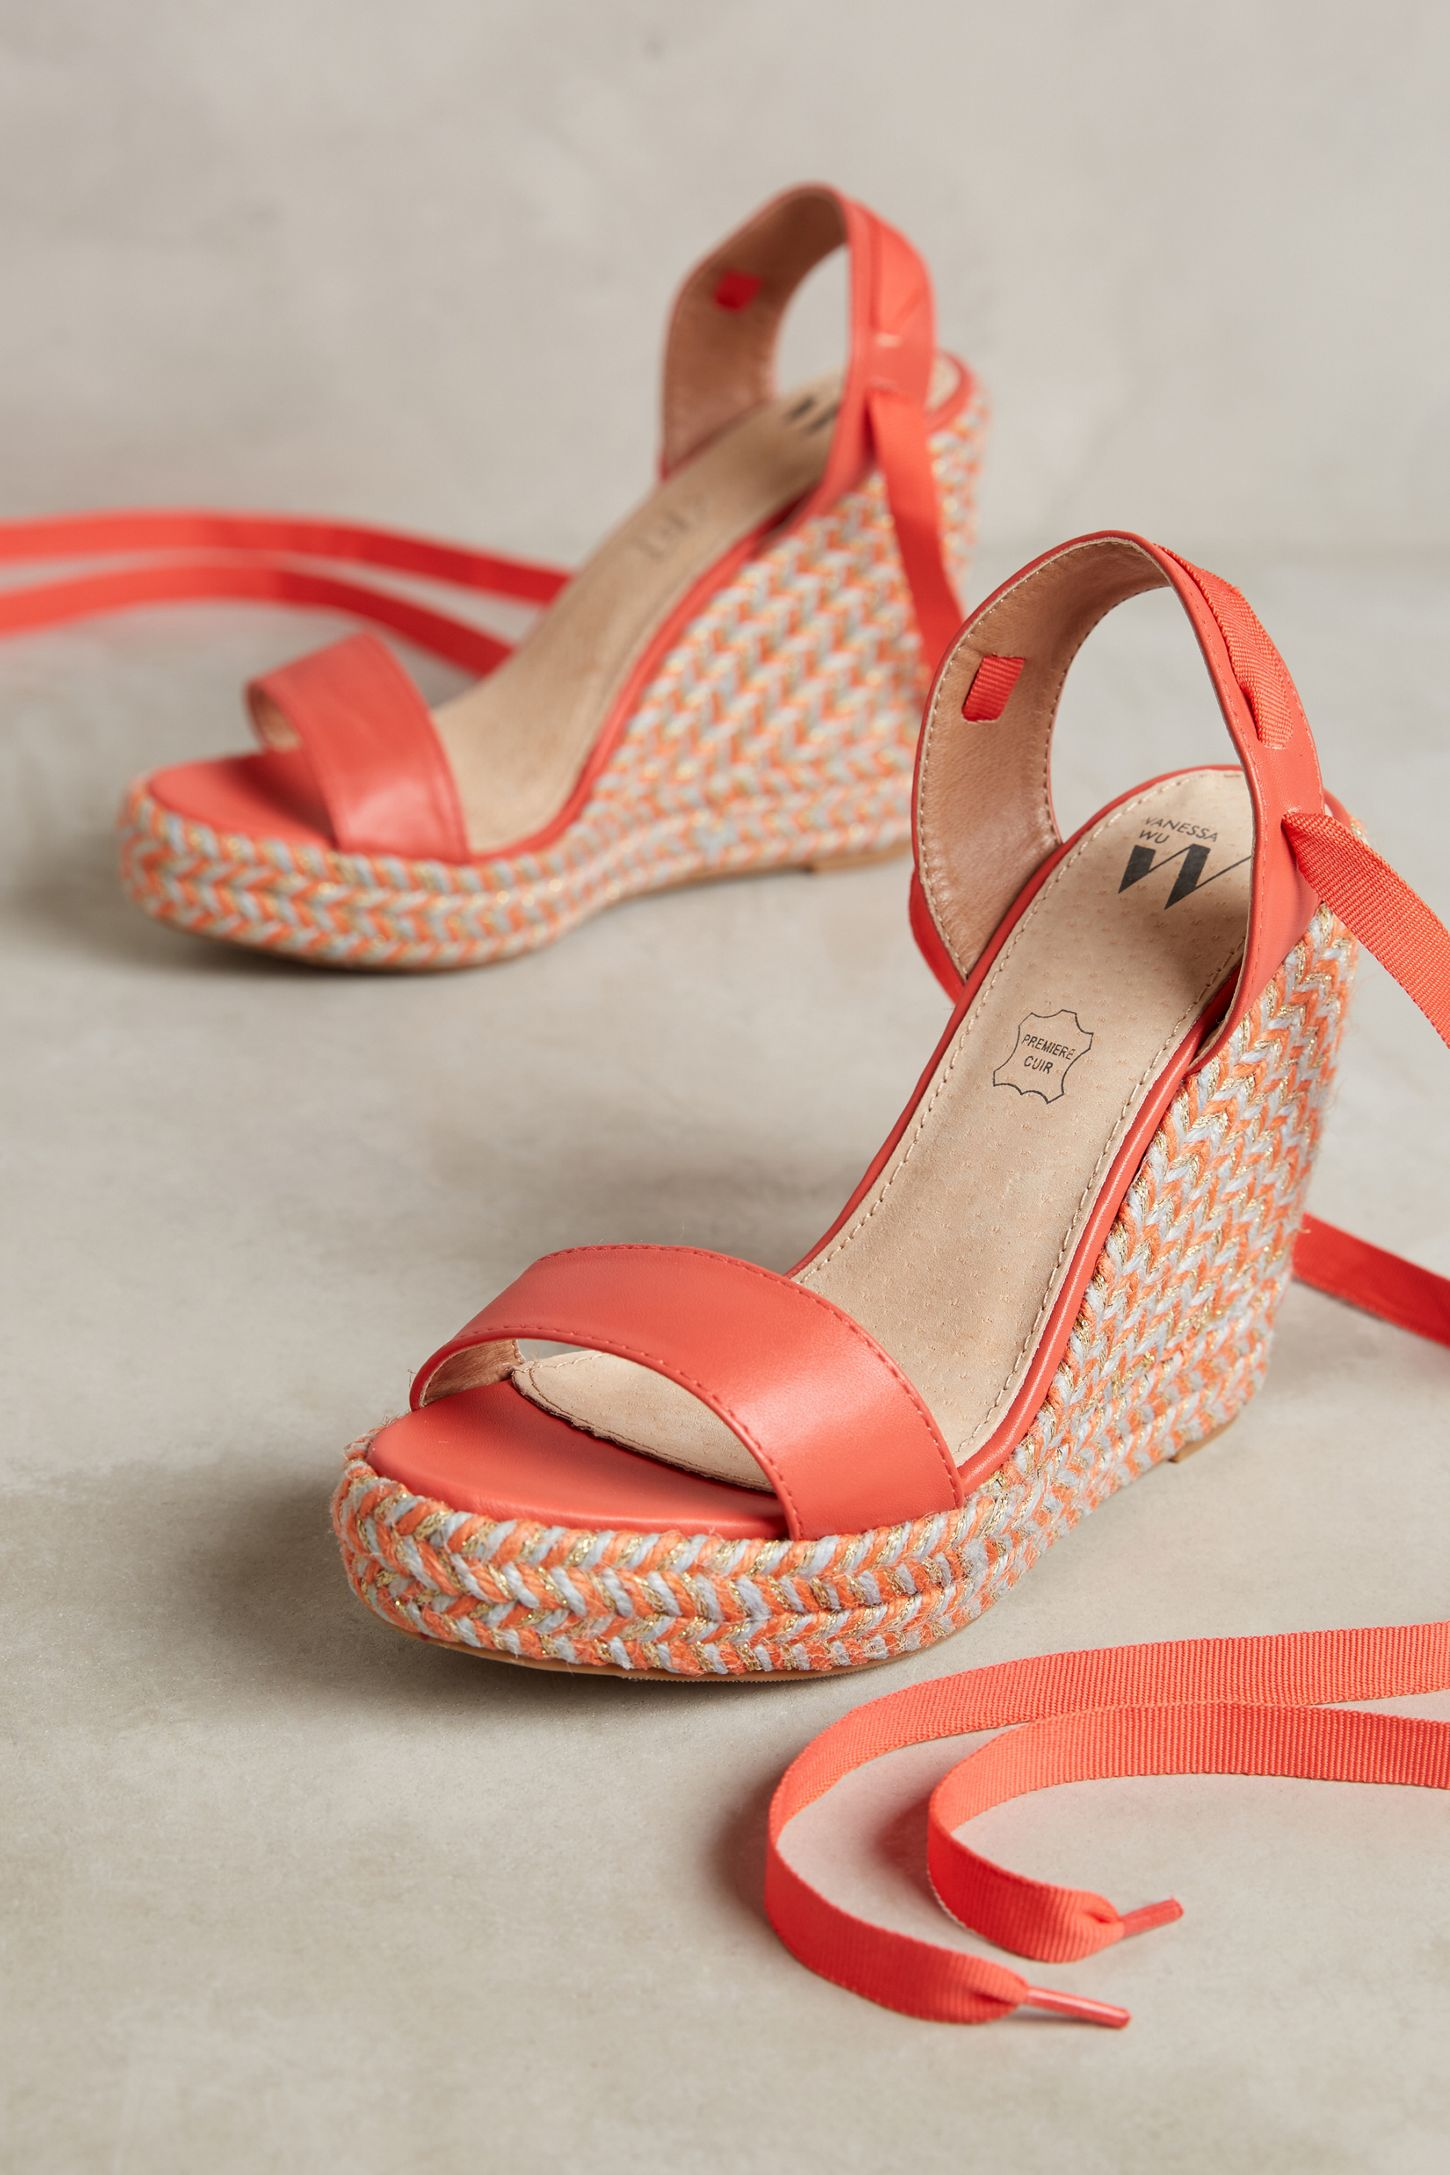 224ab4d7fc4c Vanessa Wu Colorful Wedge Sandals